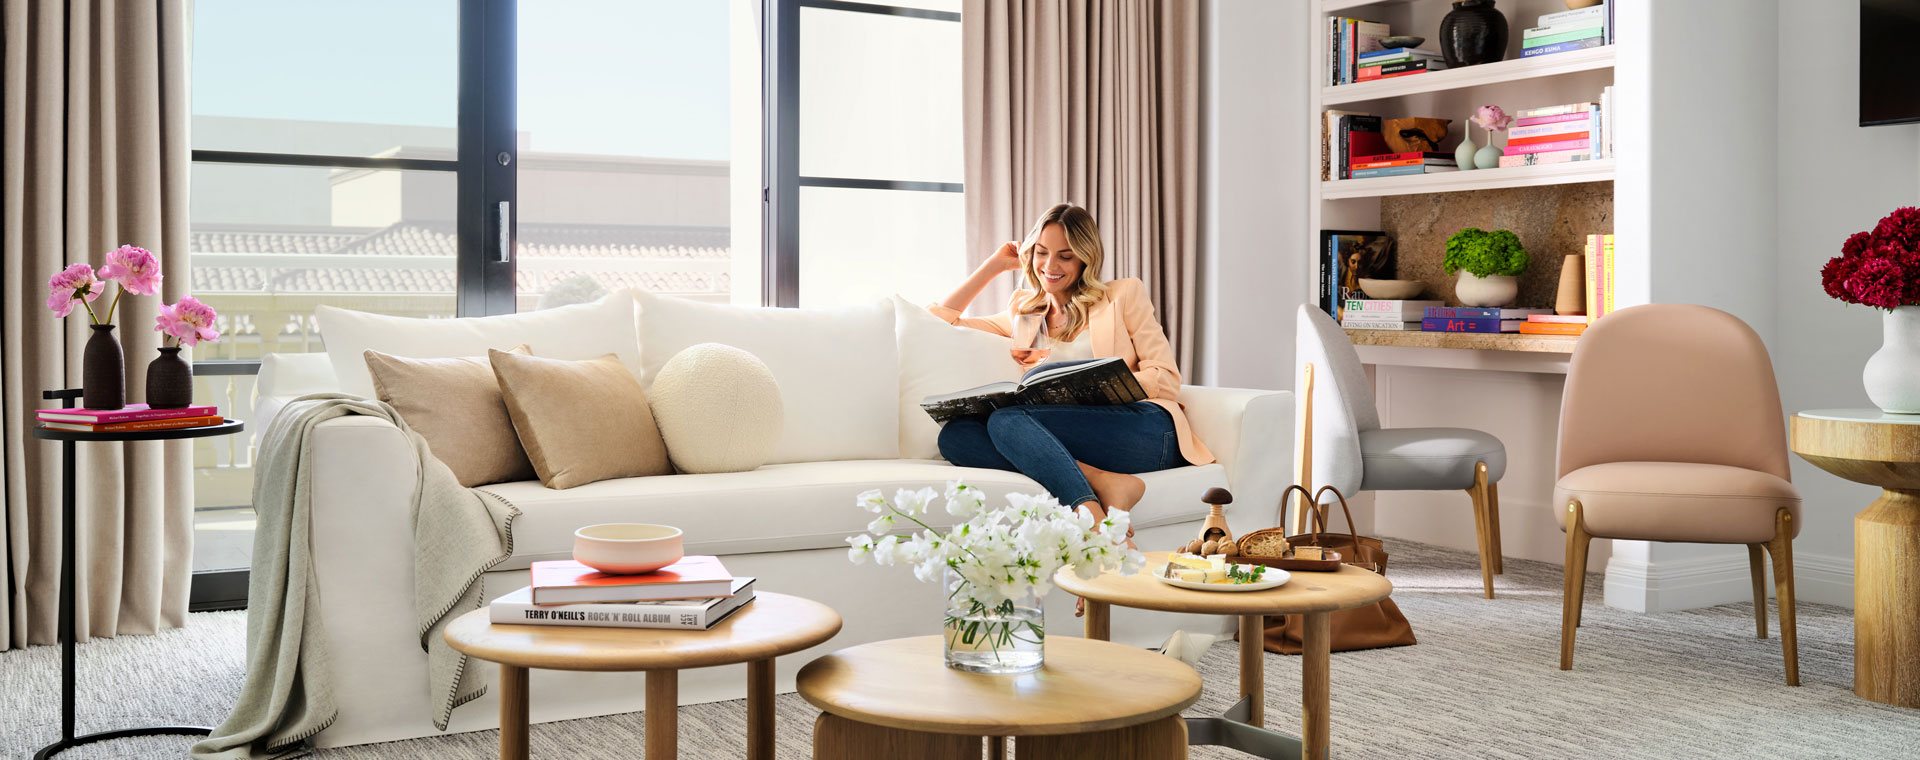 Woman sitting on couch in a suite by a coffee table reading a book